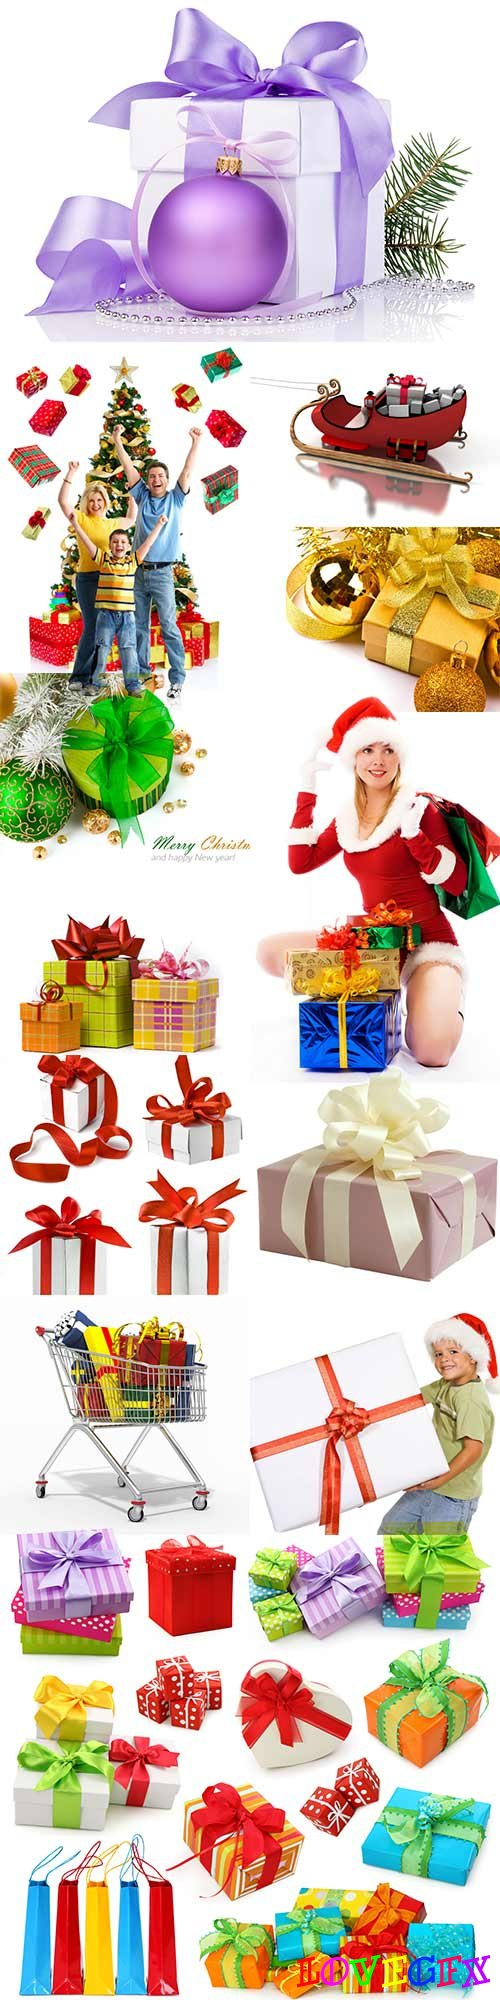 Christmas holiday gifts 3